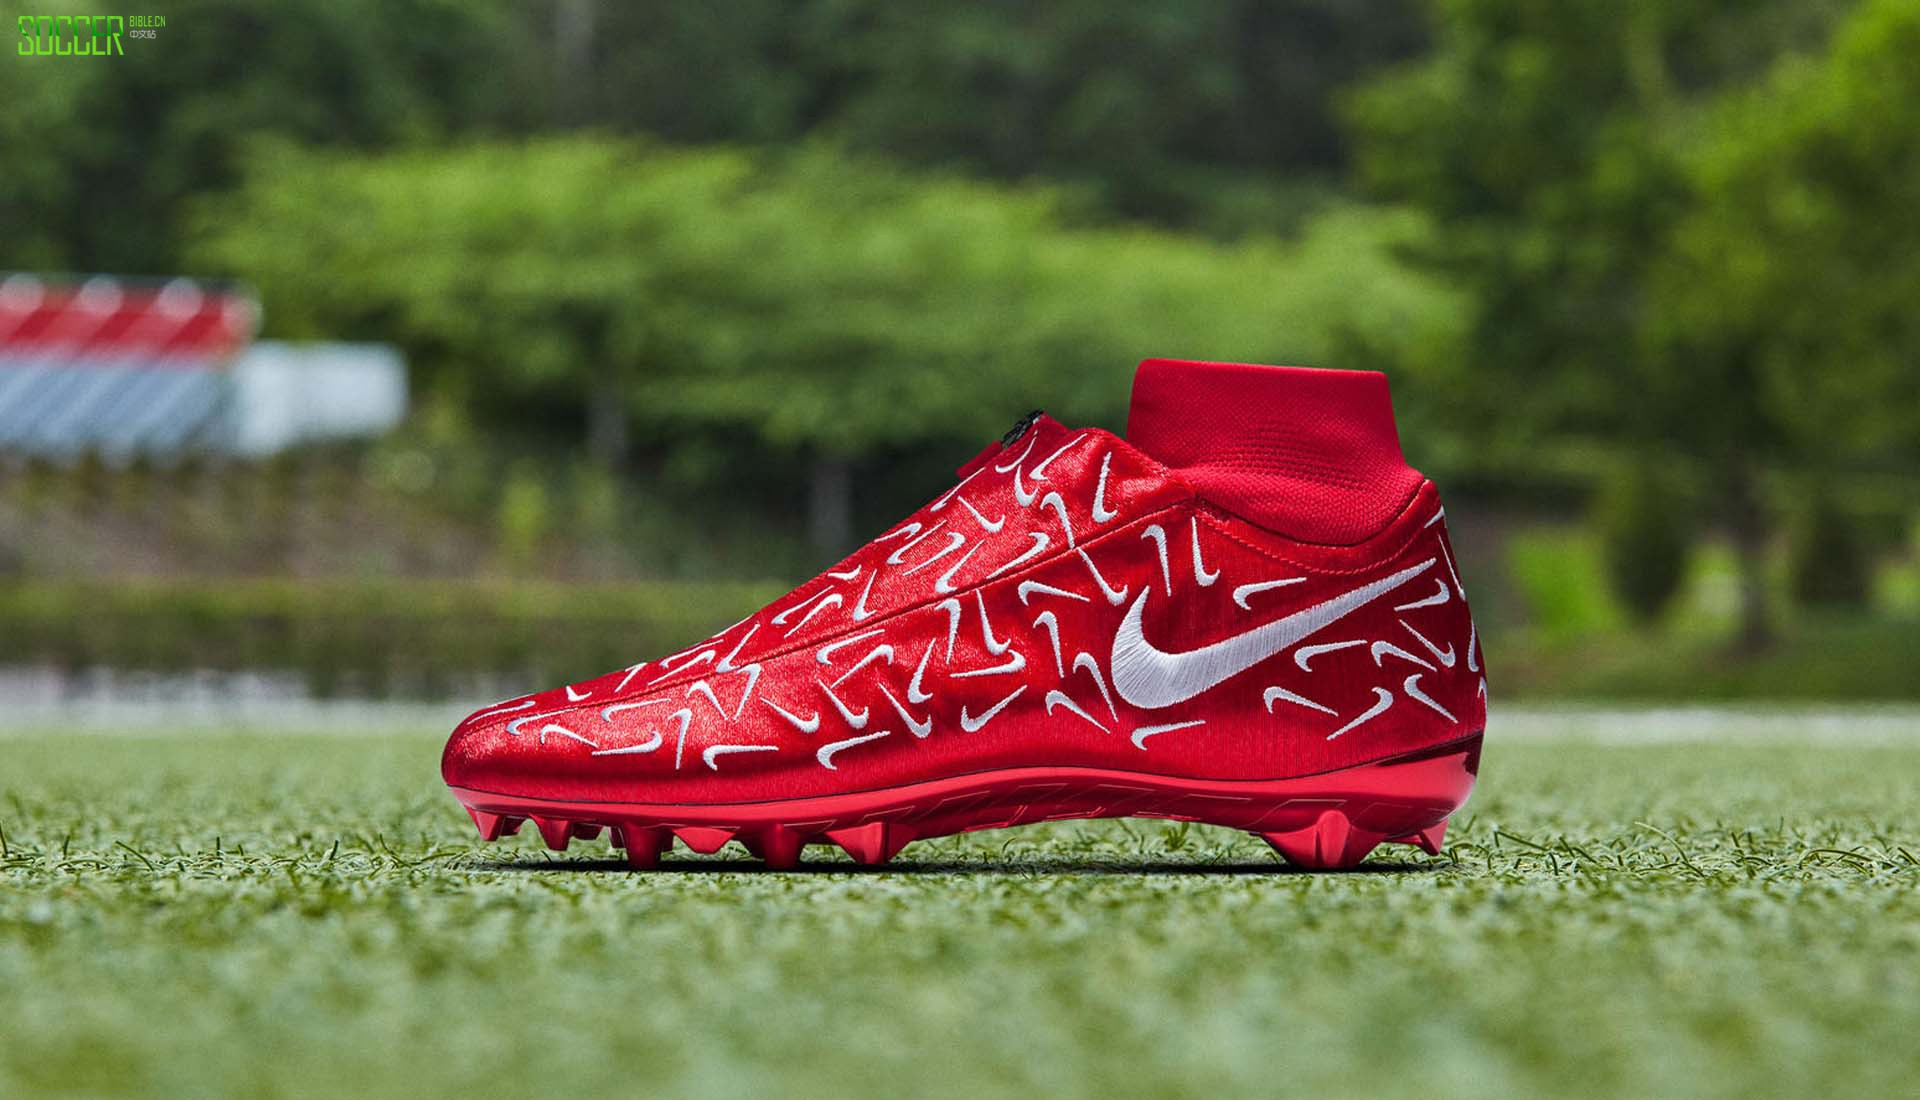 obj-swoosh-cleats-min